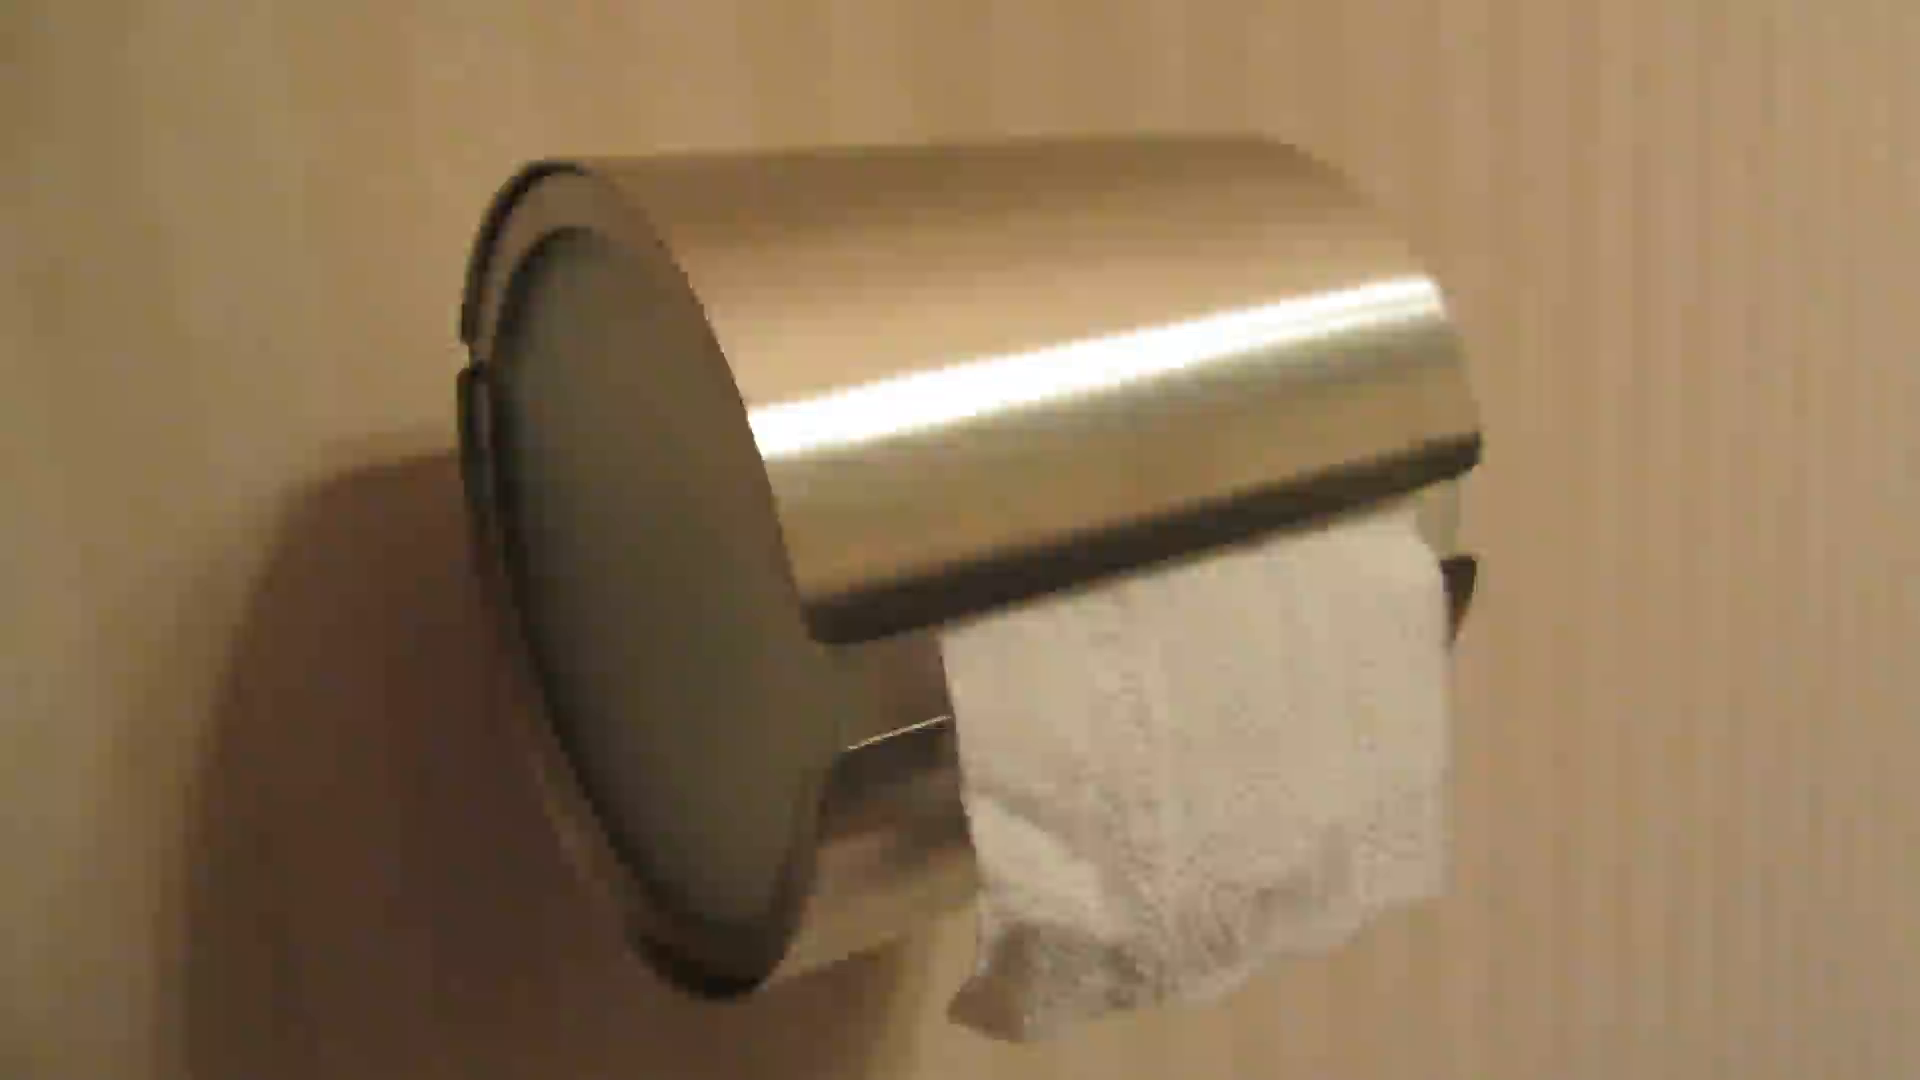 amazoncom customer reviews blomus toilet roll holder wrap around - i got this to keep my cat from eating the toilet paper i will have to keepthe paper tucked into the dispenser and hopefully she won't try to get intoit